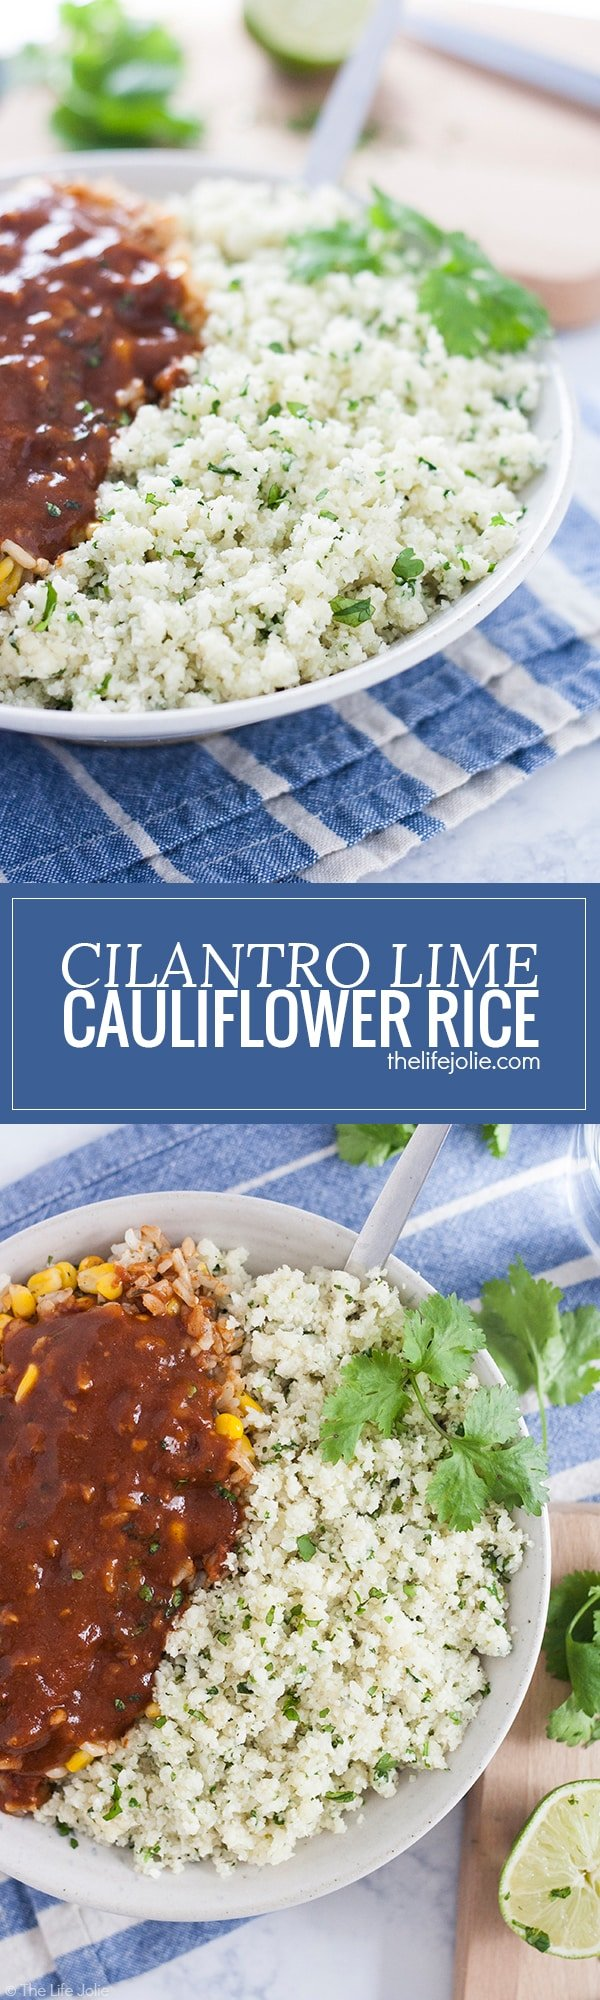 Cilantro Lime Cauliflower Rice is such an easy, low carb side dish. With cauliflower, garlic, cilantro and lime juice it cooks up really quickly and tastes especially great with Mexican food. This is definitely one of my new favorite healthy recipes!